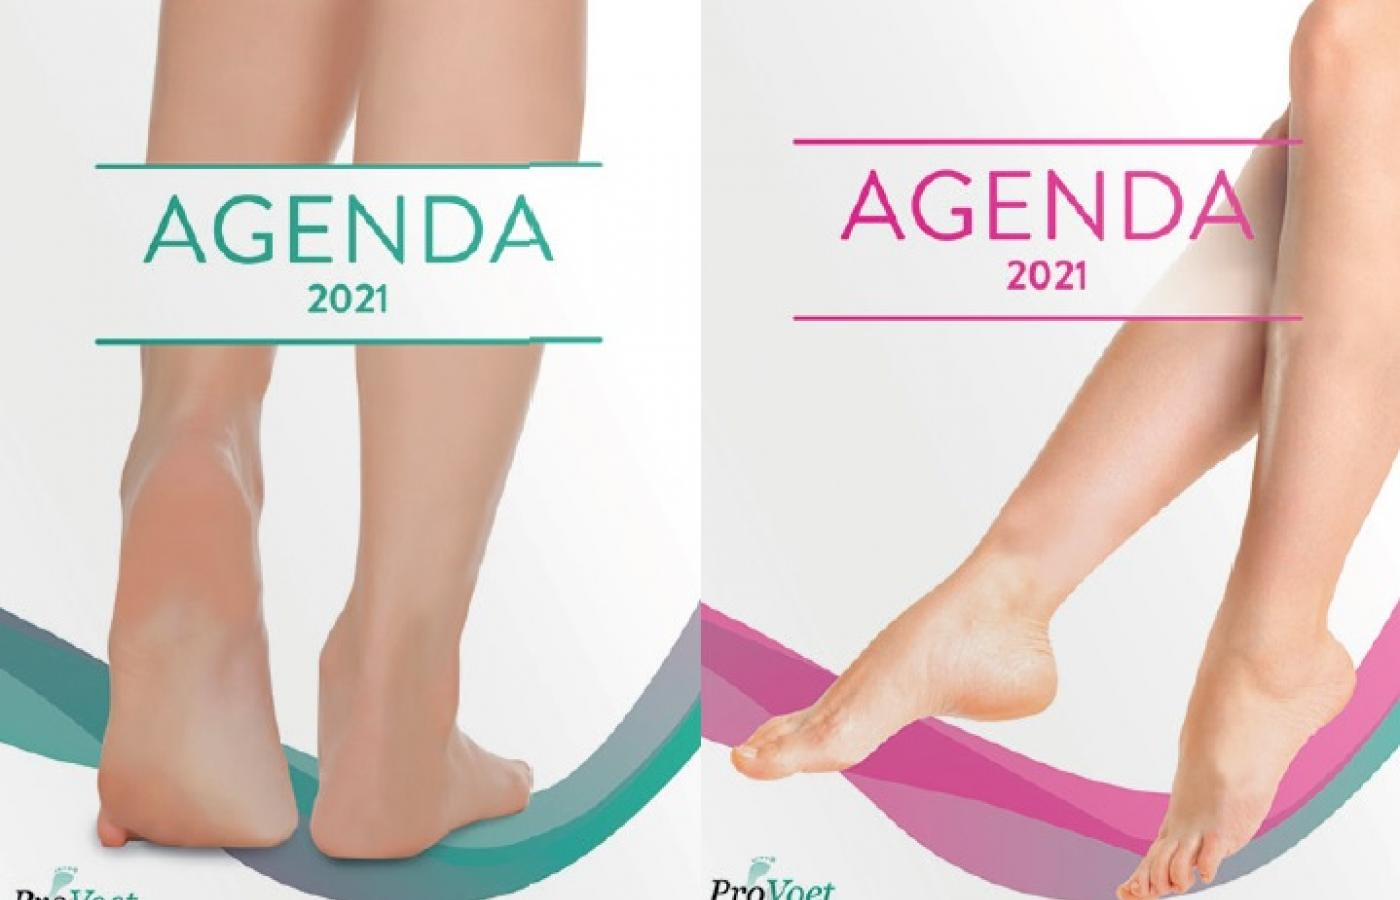 agendacovers 2021